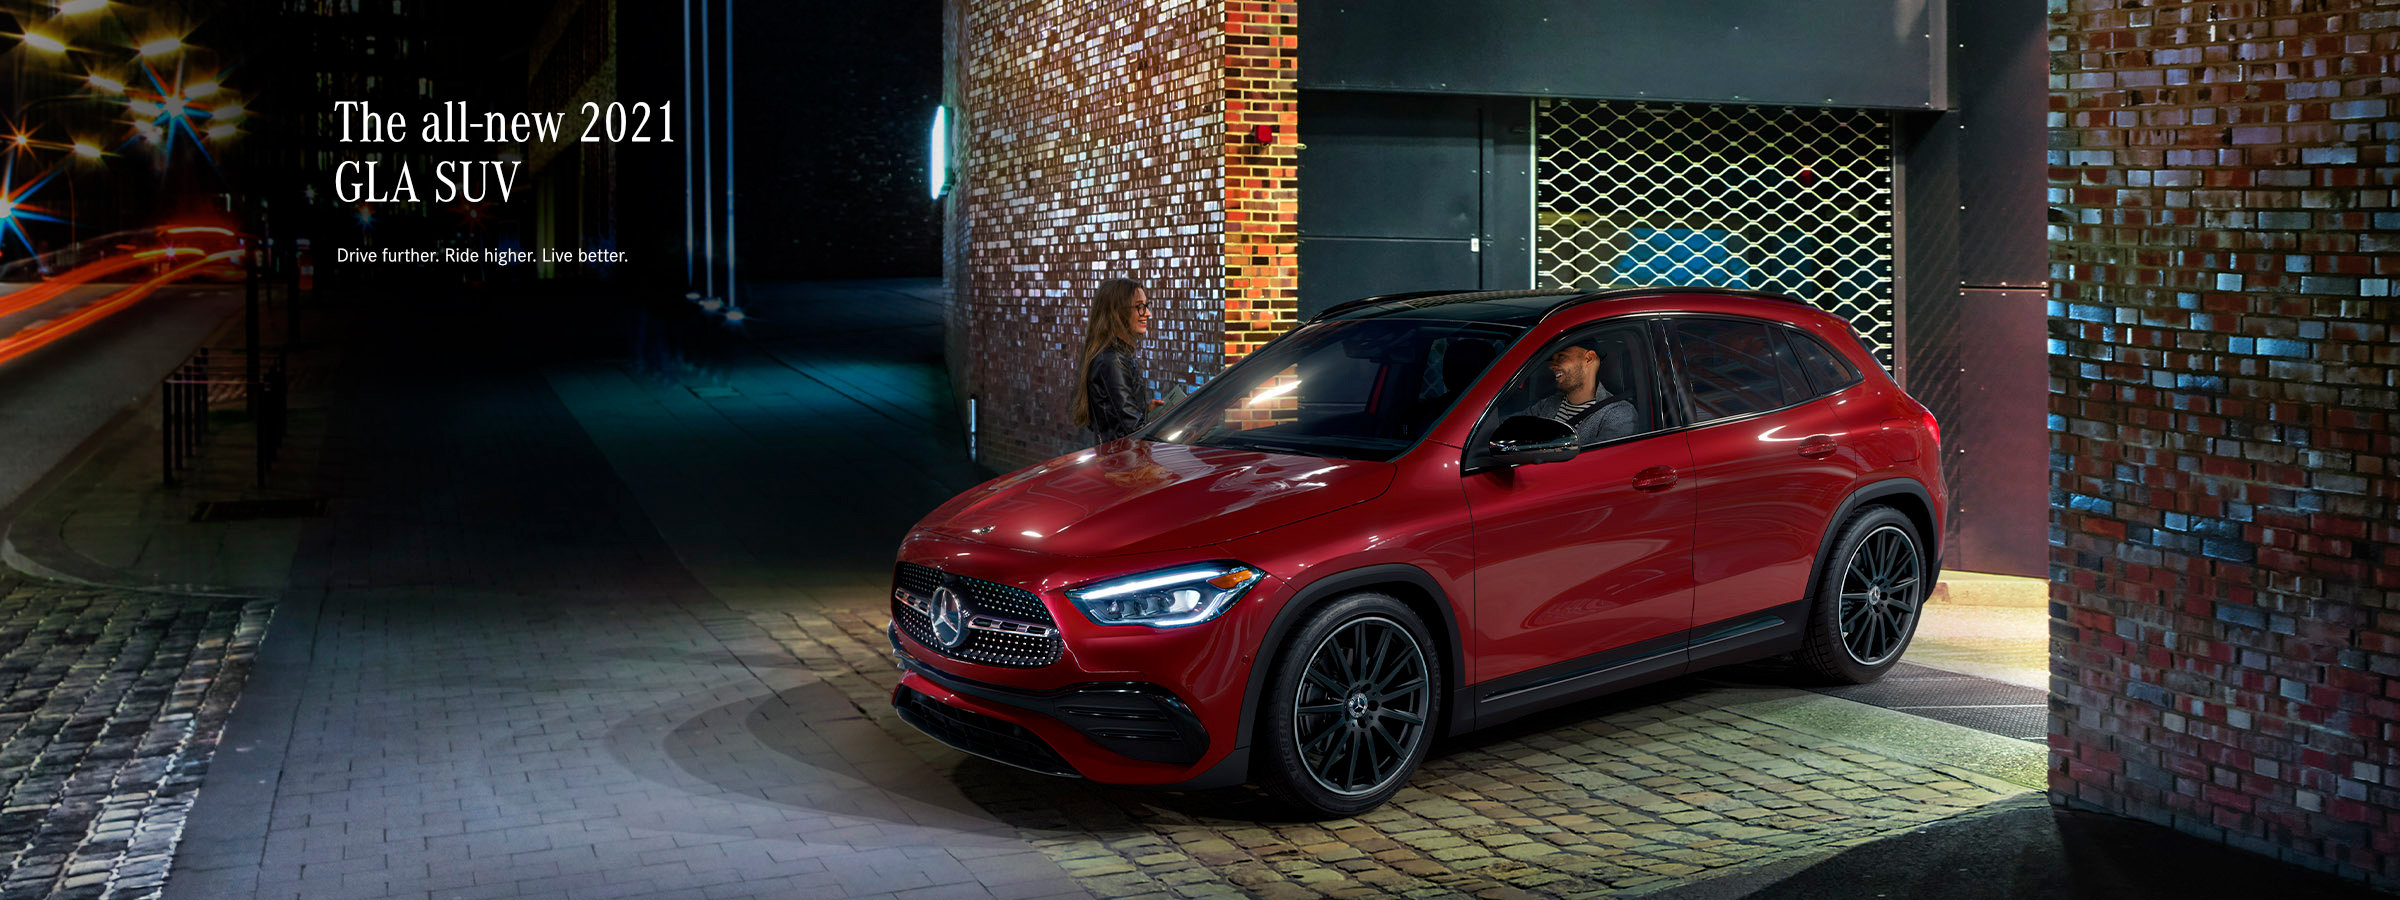 Save on a new 2021 Mercedes-Benz GLA SUV at Mercedes-Benz of Temecula in Temecula, CA